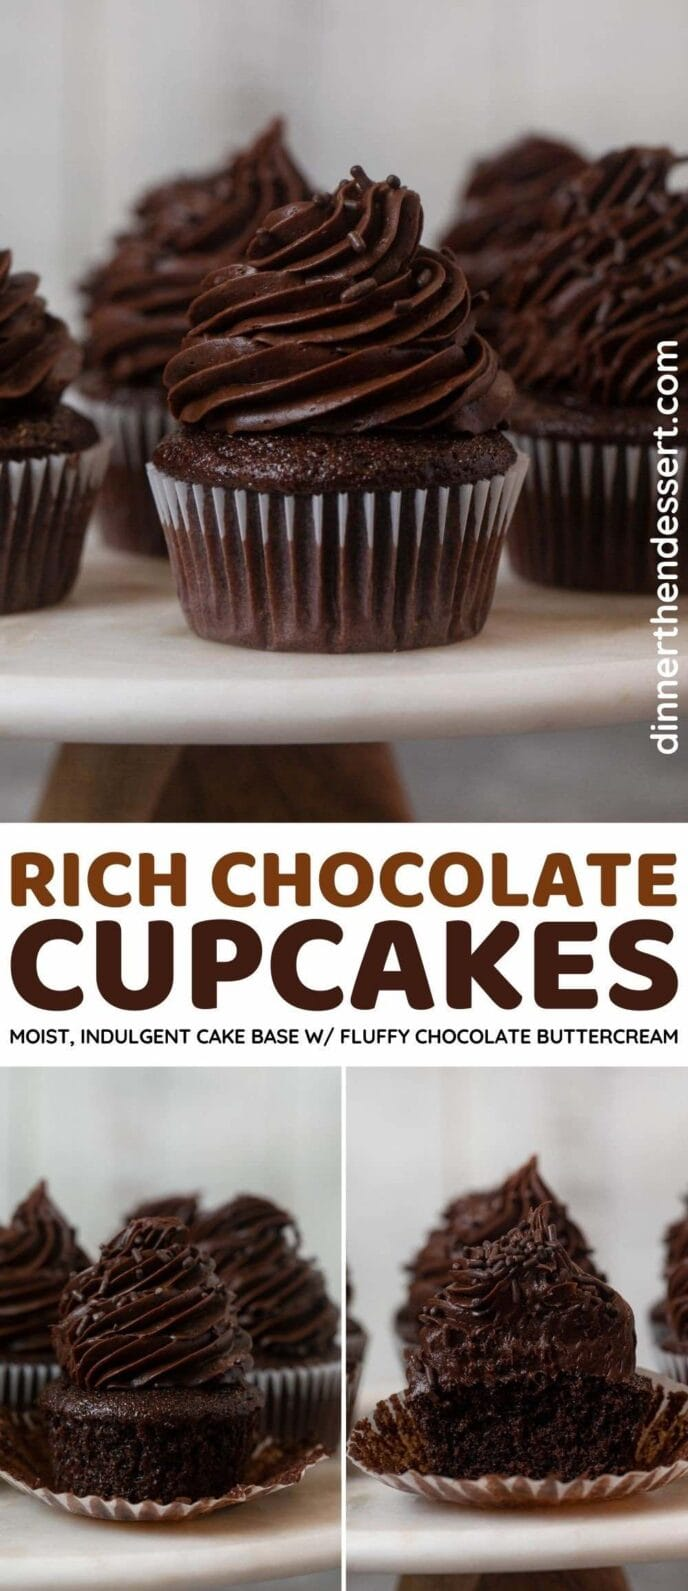 Chocolate Cupcakes collage